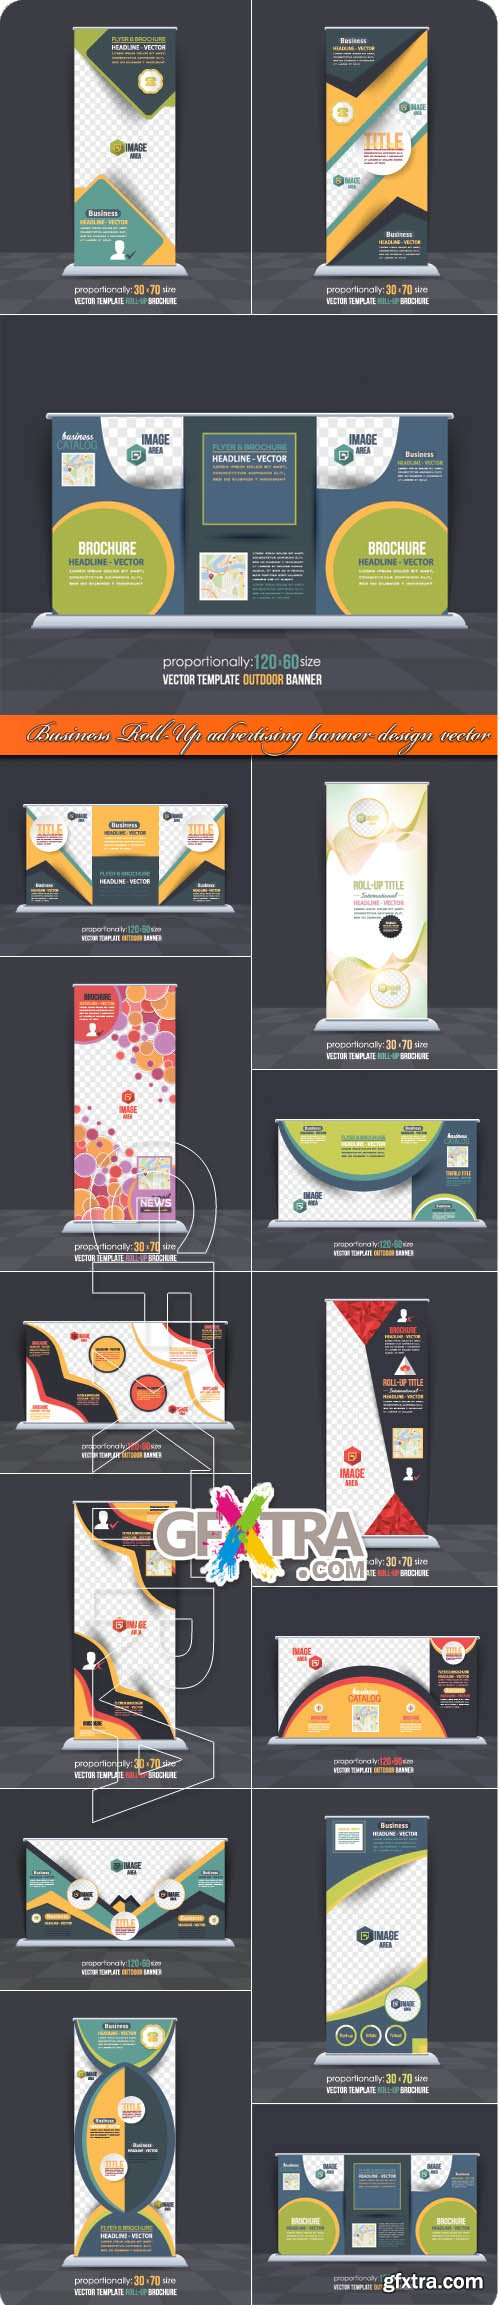 Business Roll-Up advertising banner design vector